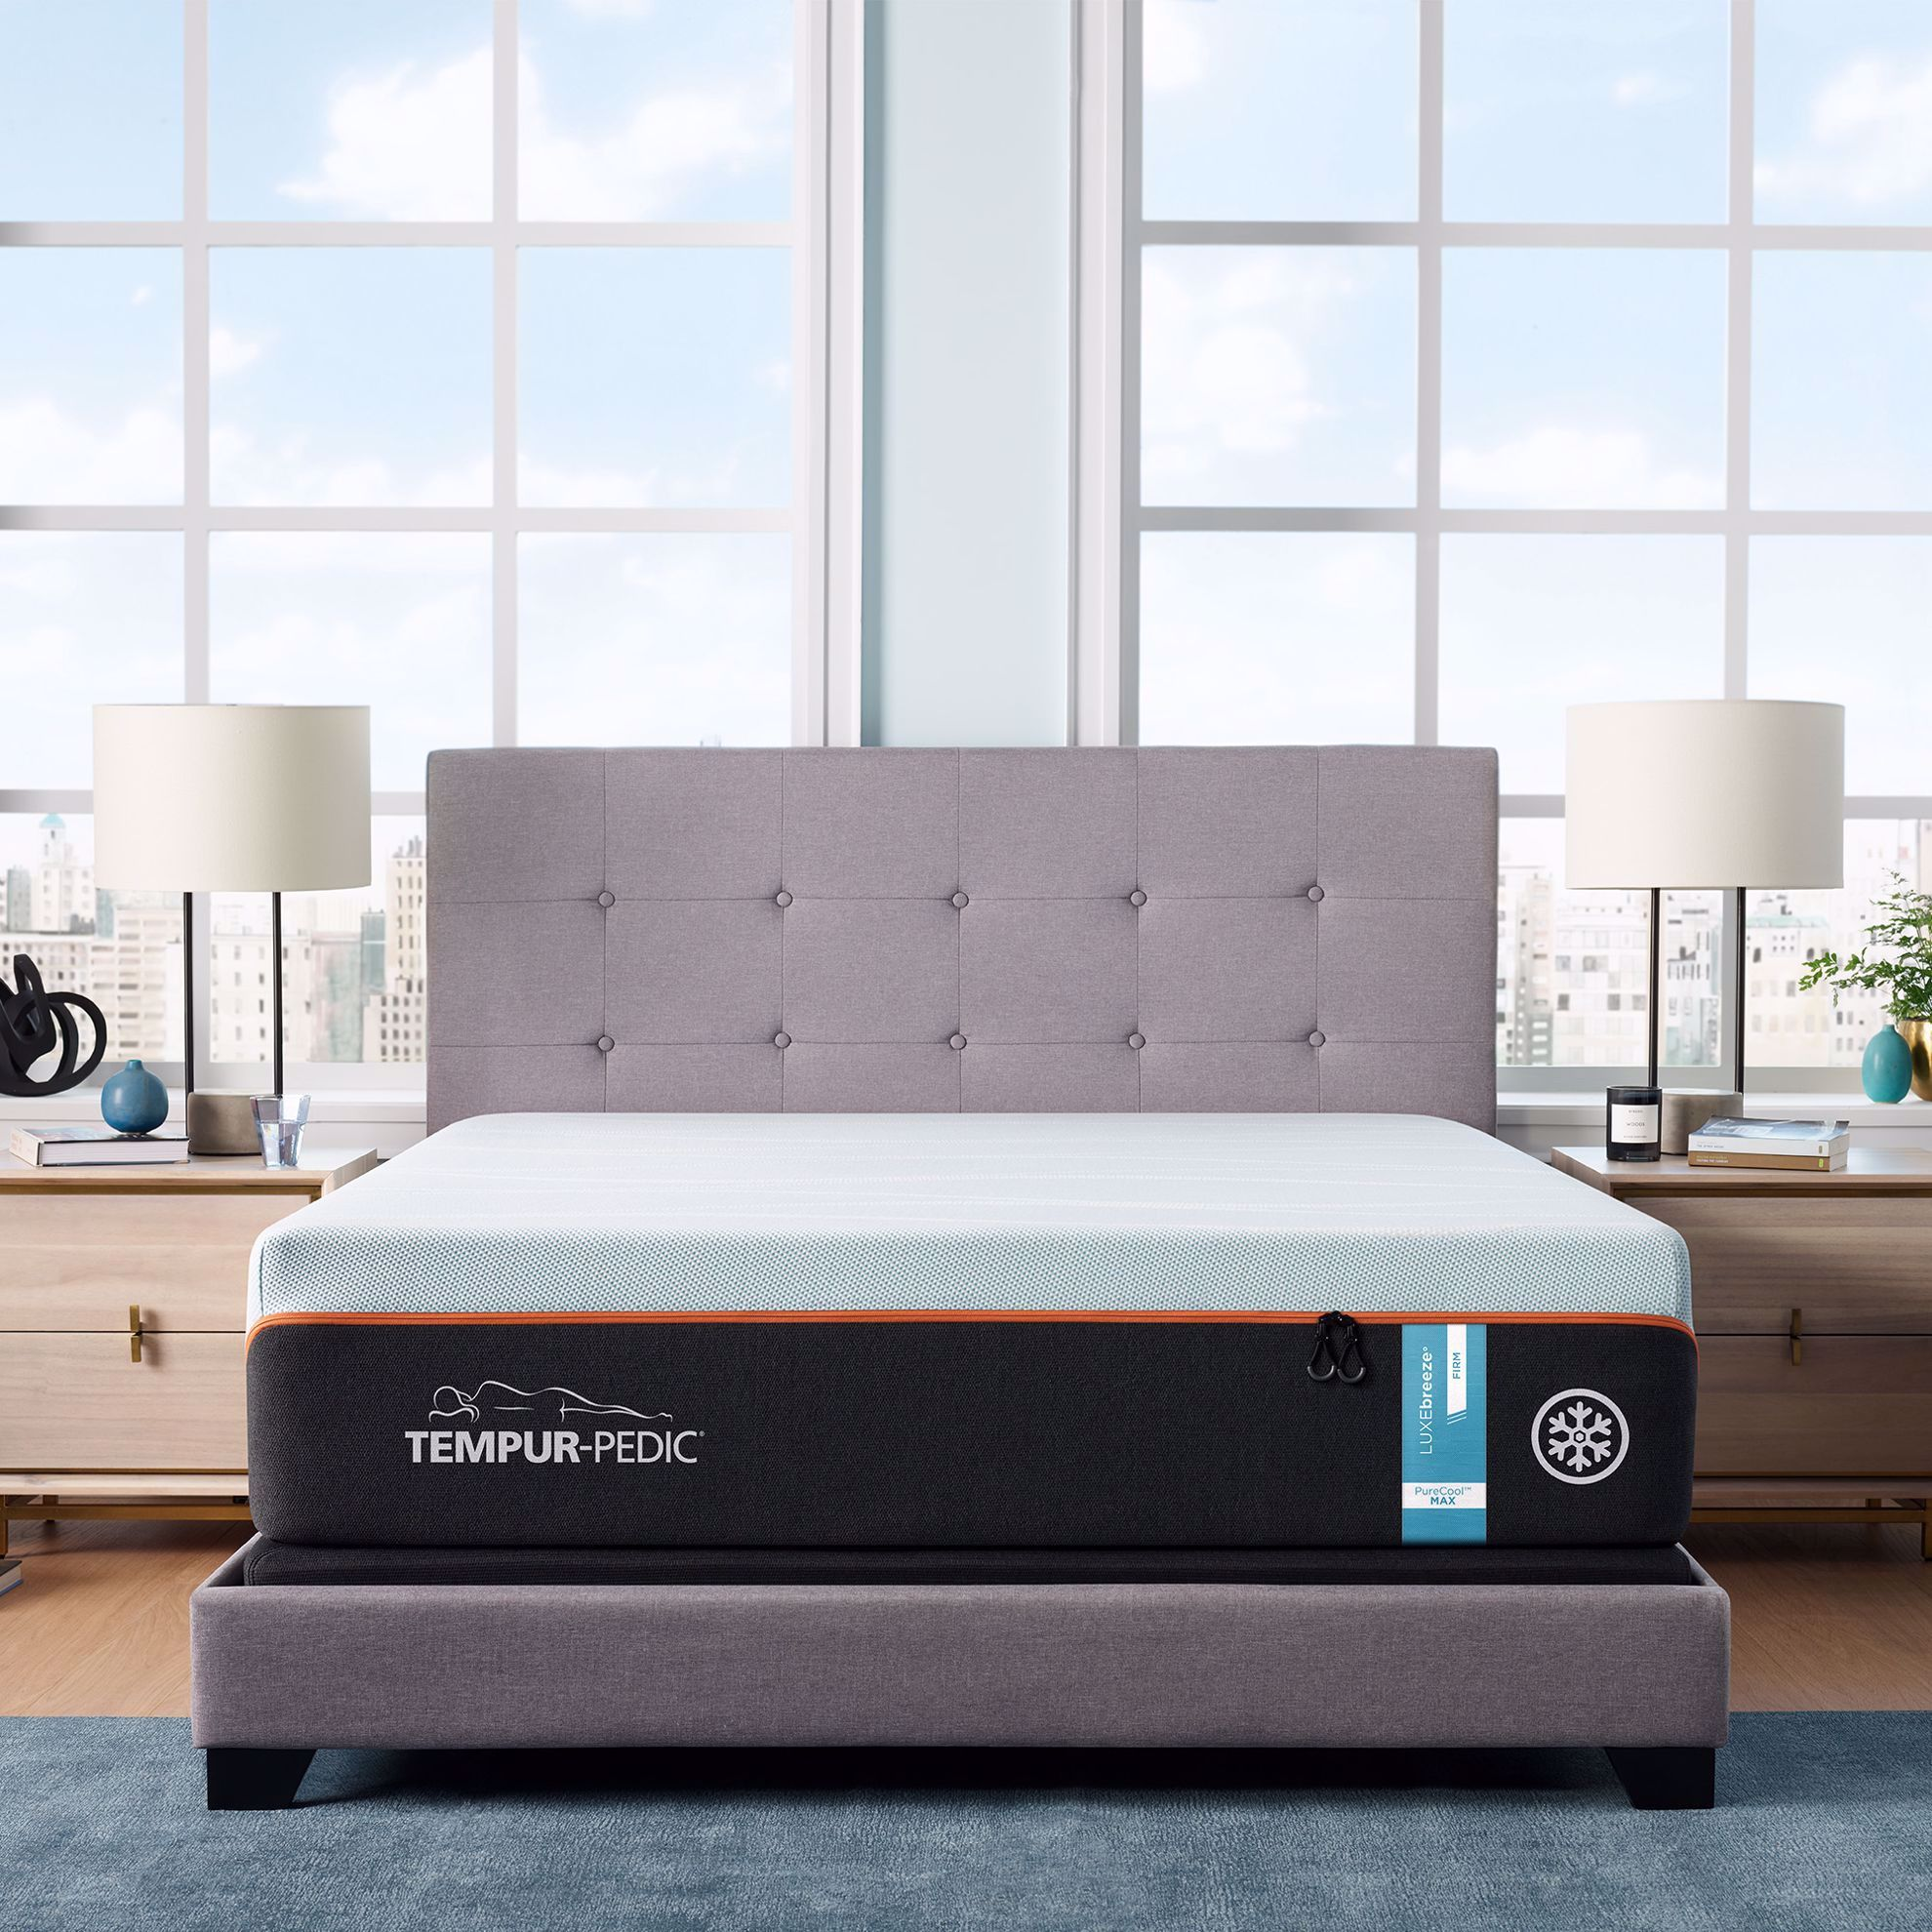 Picture of Tempur-Pedic Luxe Breeze Firm Queen Mattress